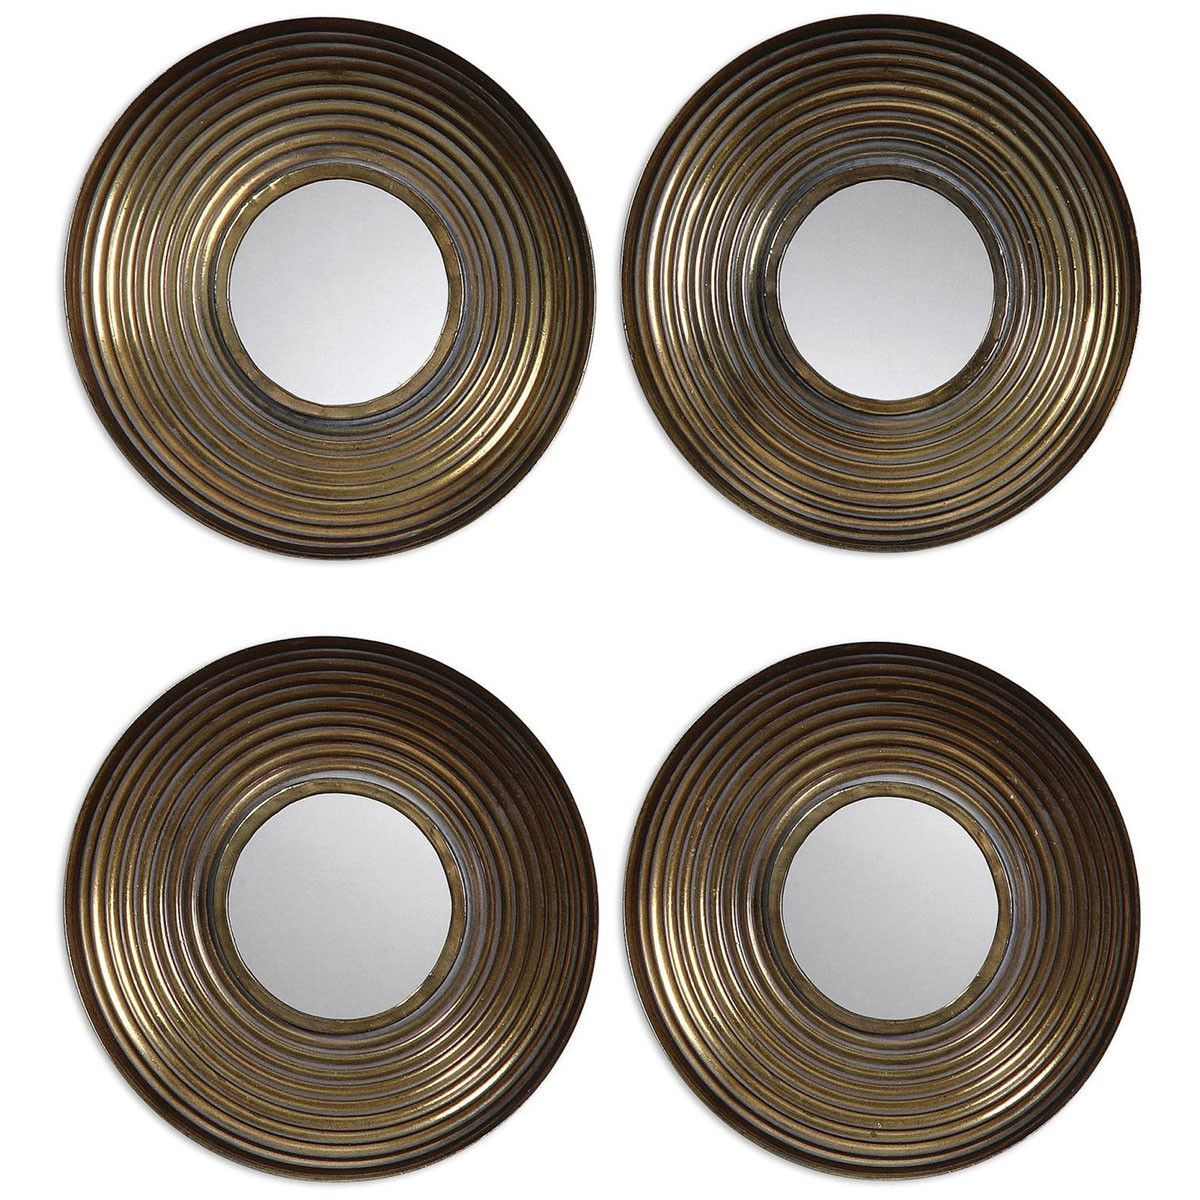 Uttermost Tondela Round Mirrors Set Of 4 12858 Round Mirrors